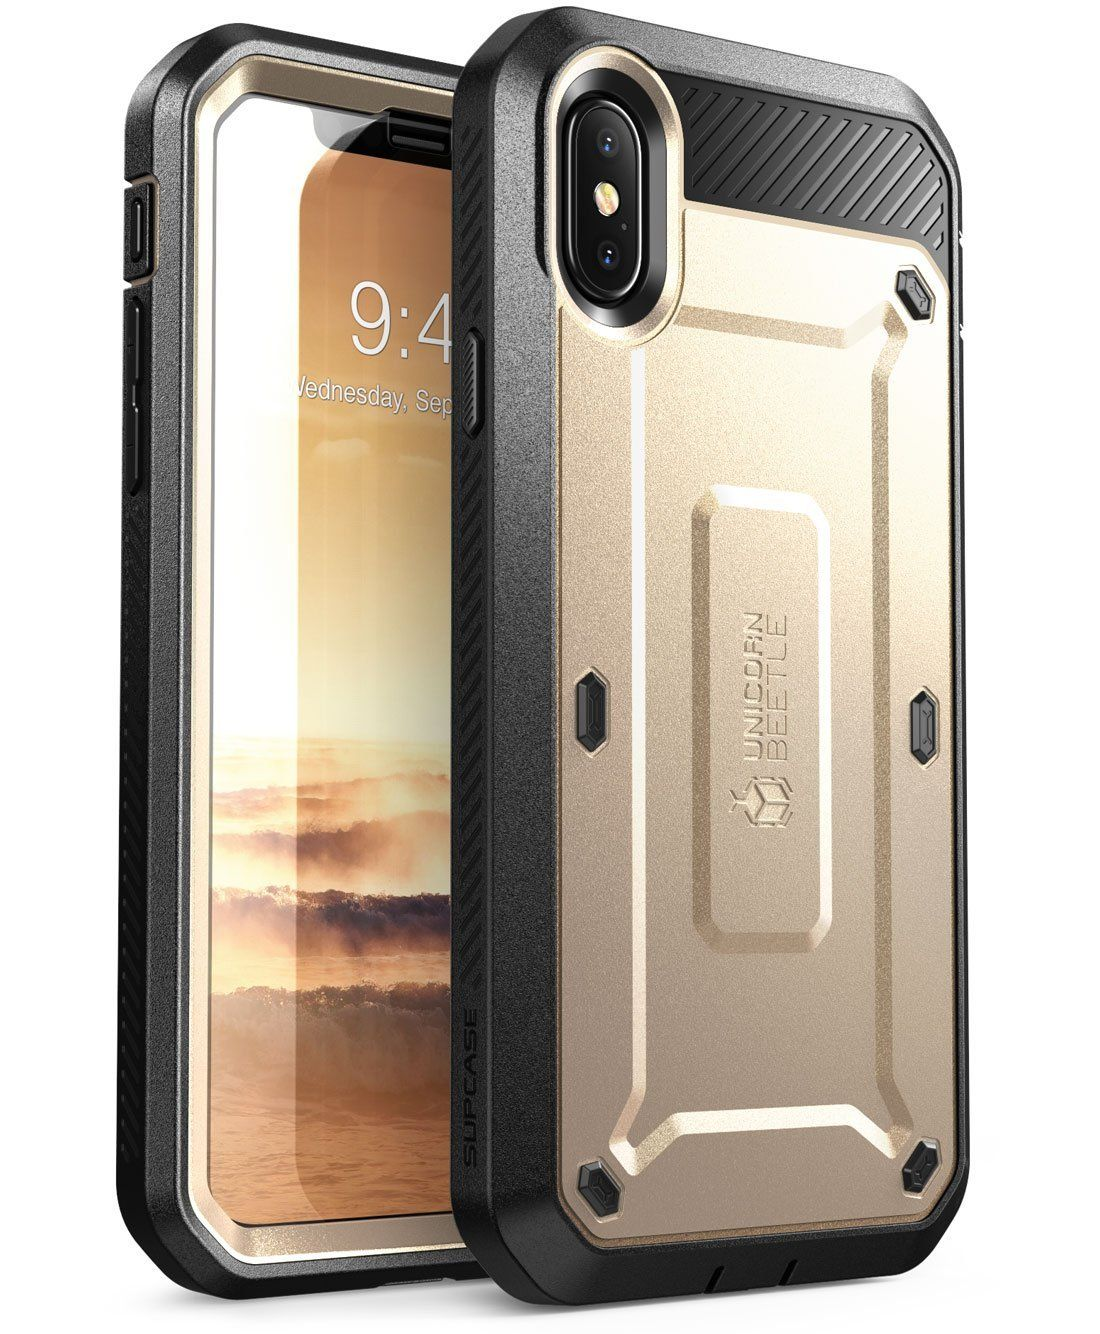 new arrivals 4f5bb 58faf iPhone X Case, SUPCASE Full-body Rugged Holster Case with Built-in ...